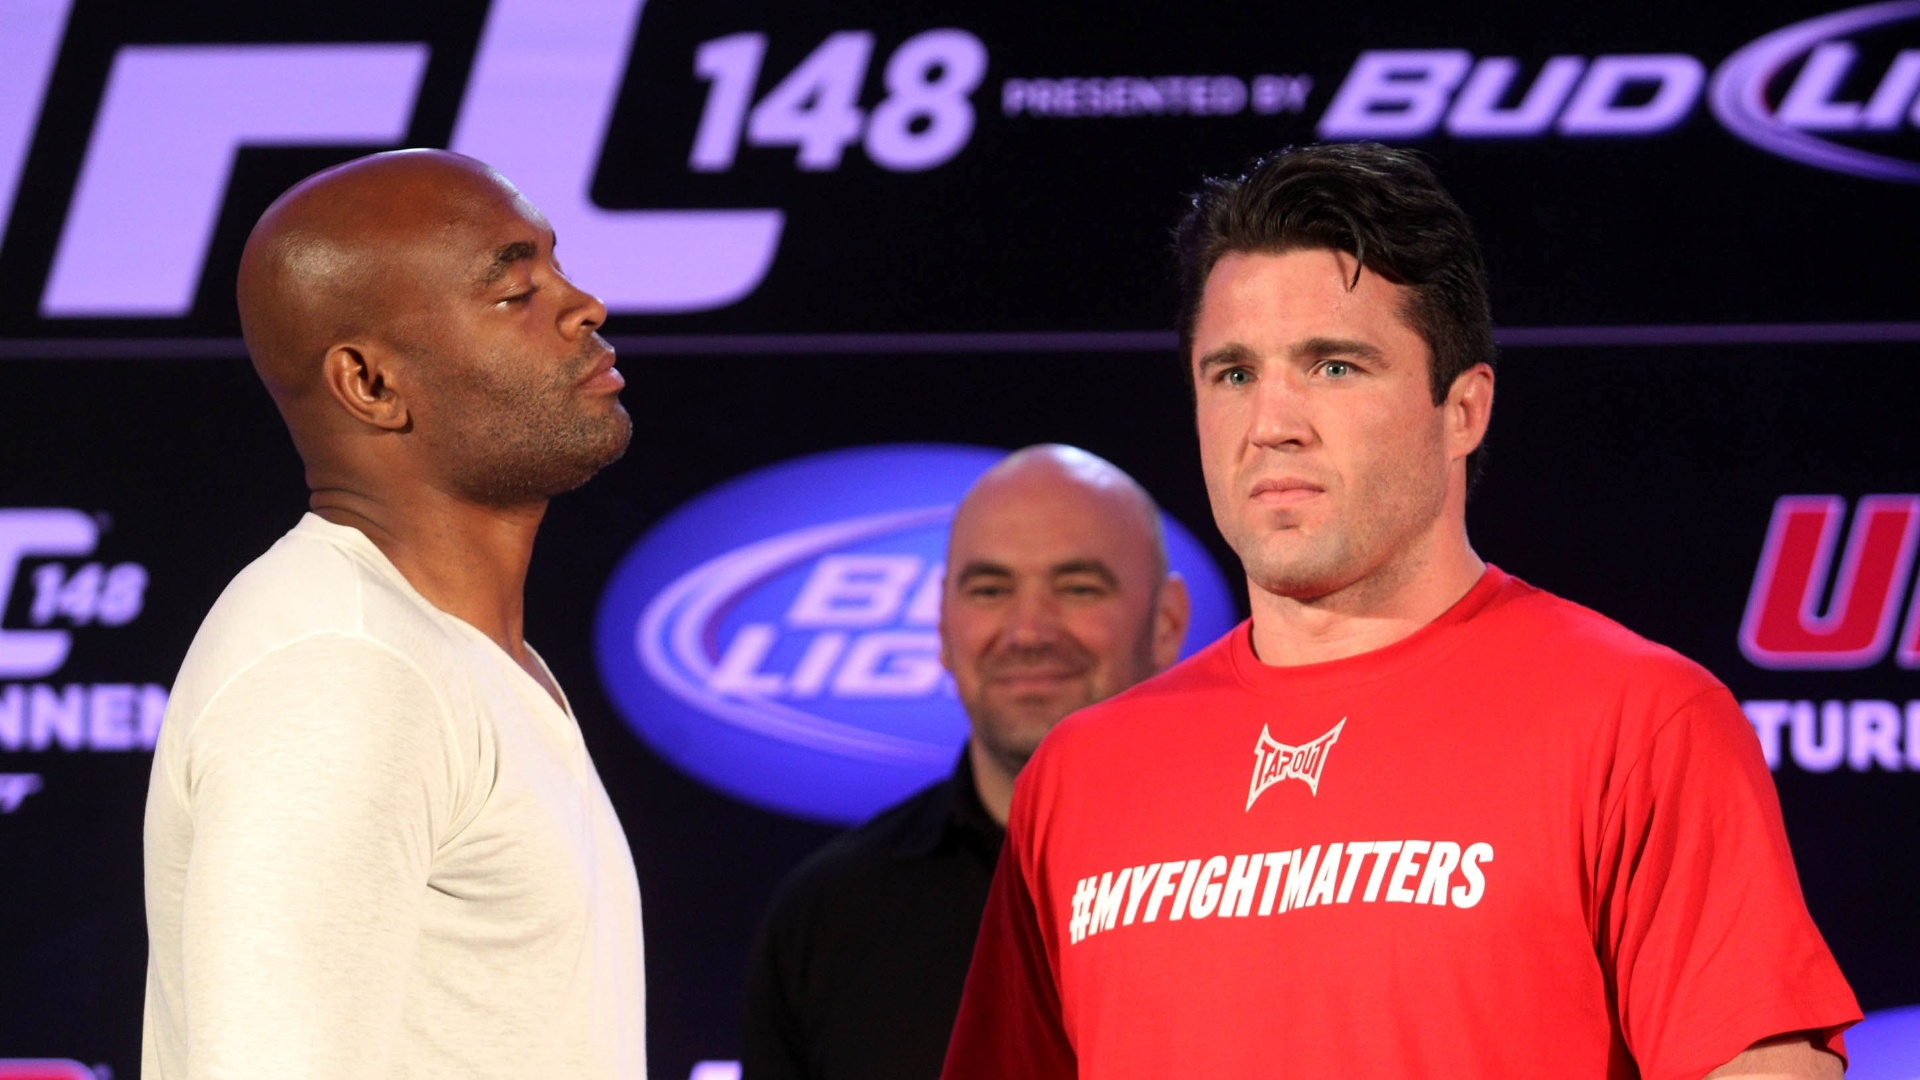 Anderson Silva encarou Chael Sonnen, que ignorou o brasileiro